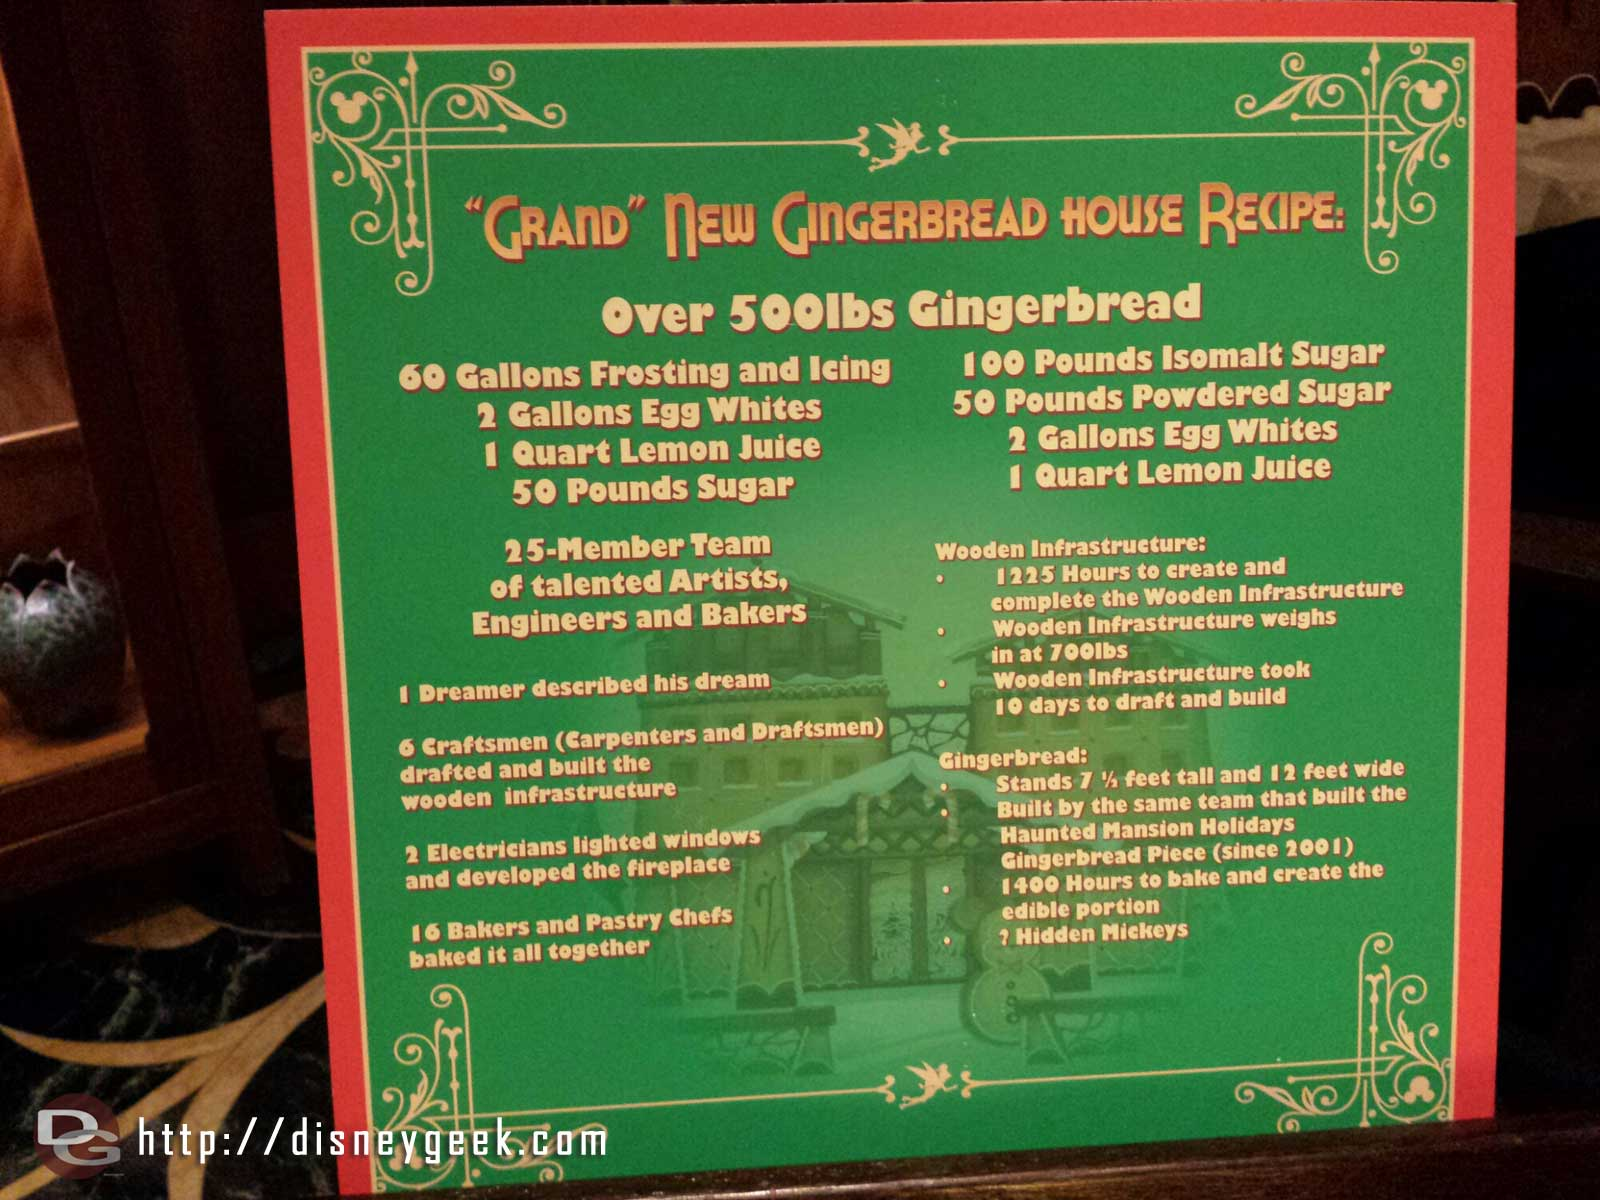 The ingredients and stats on the Grand Californian gingerbread house